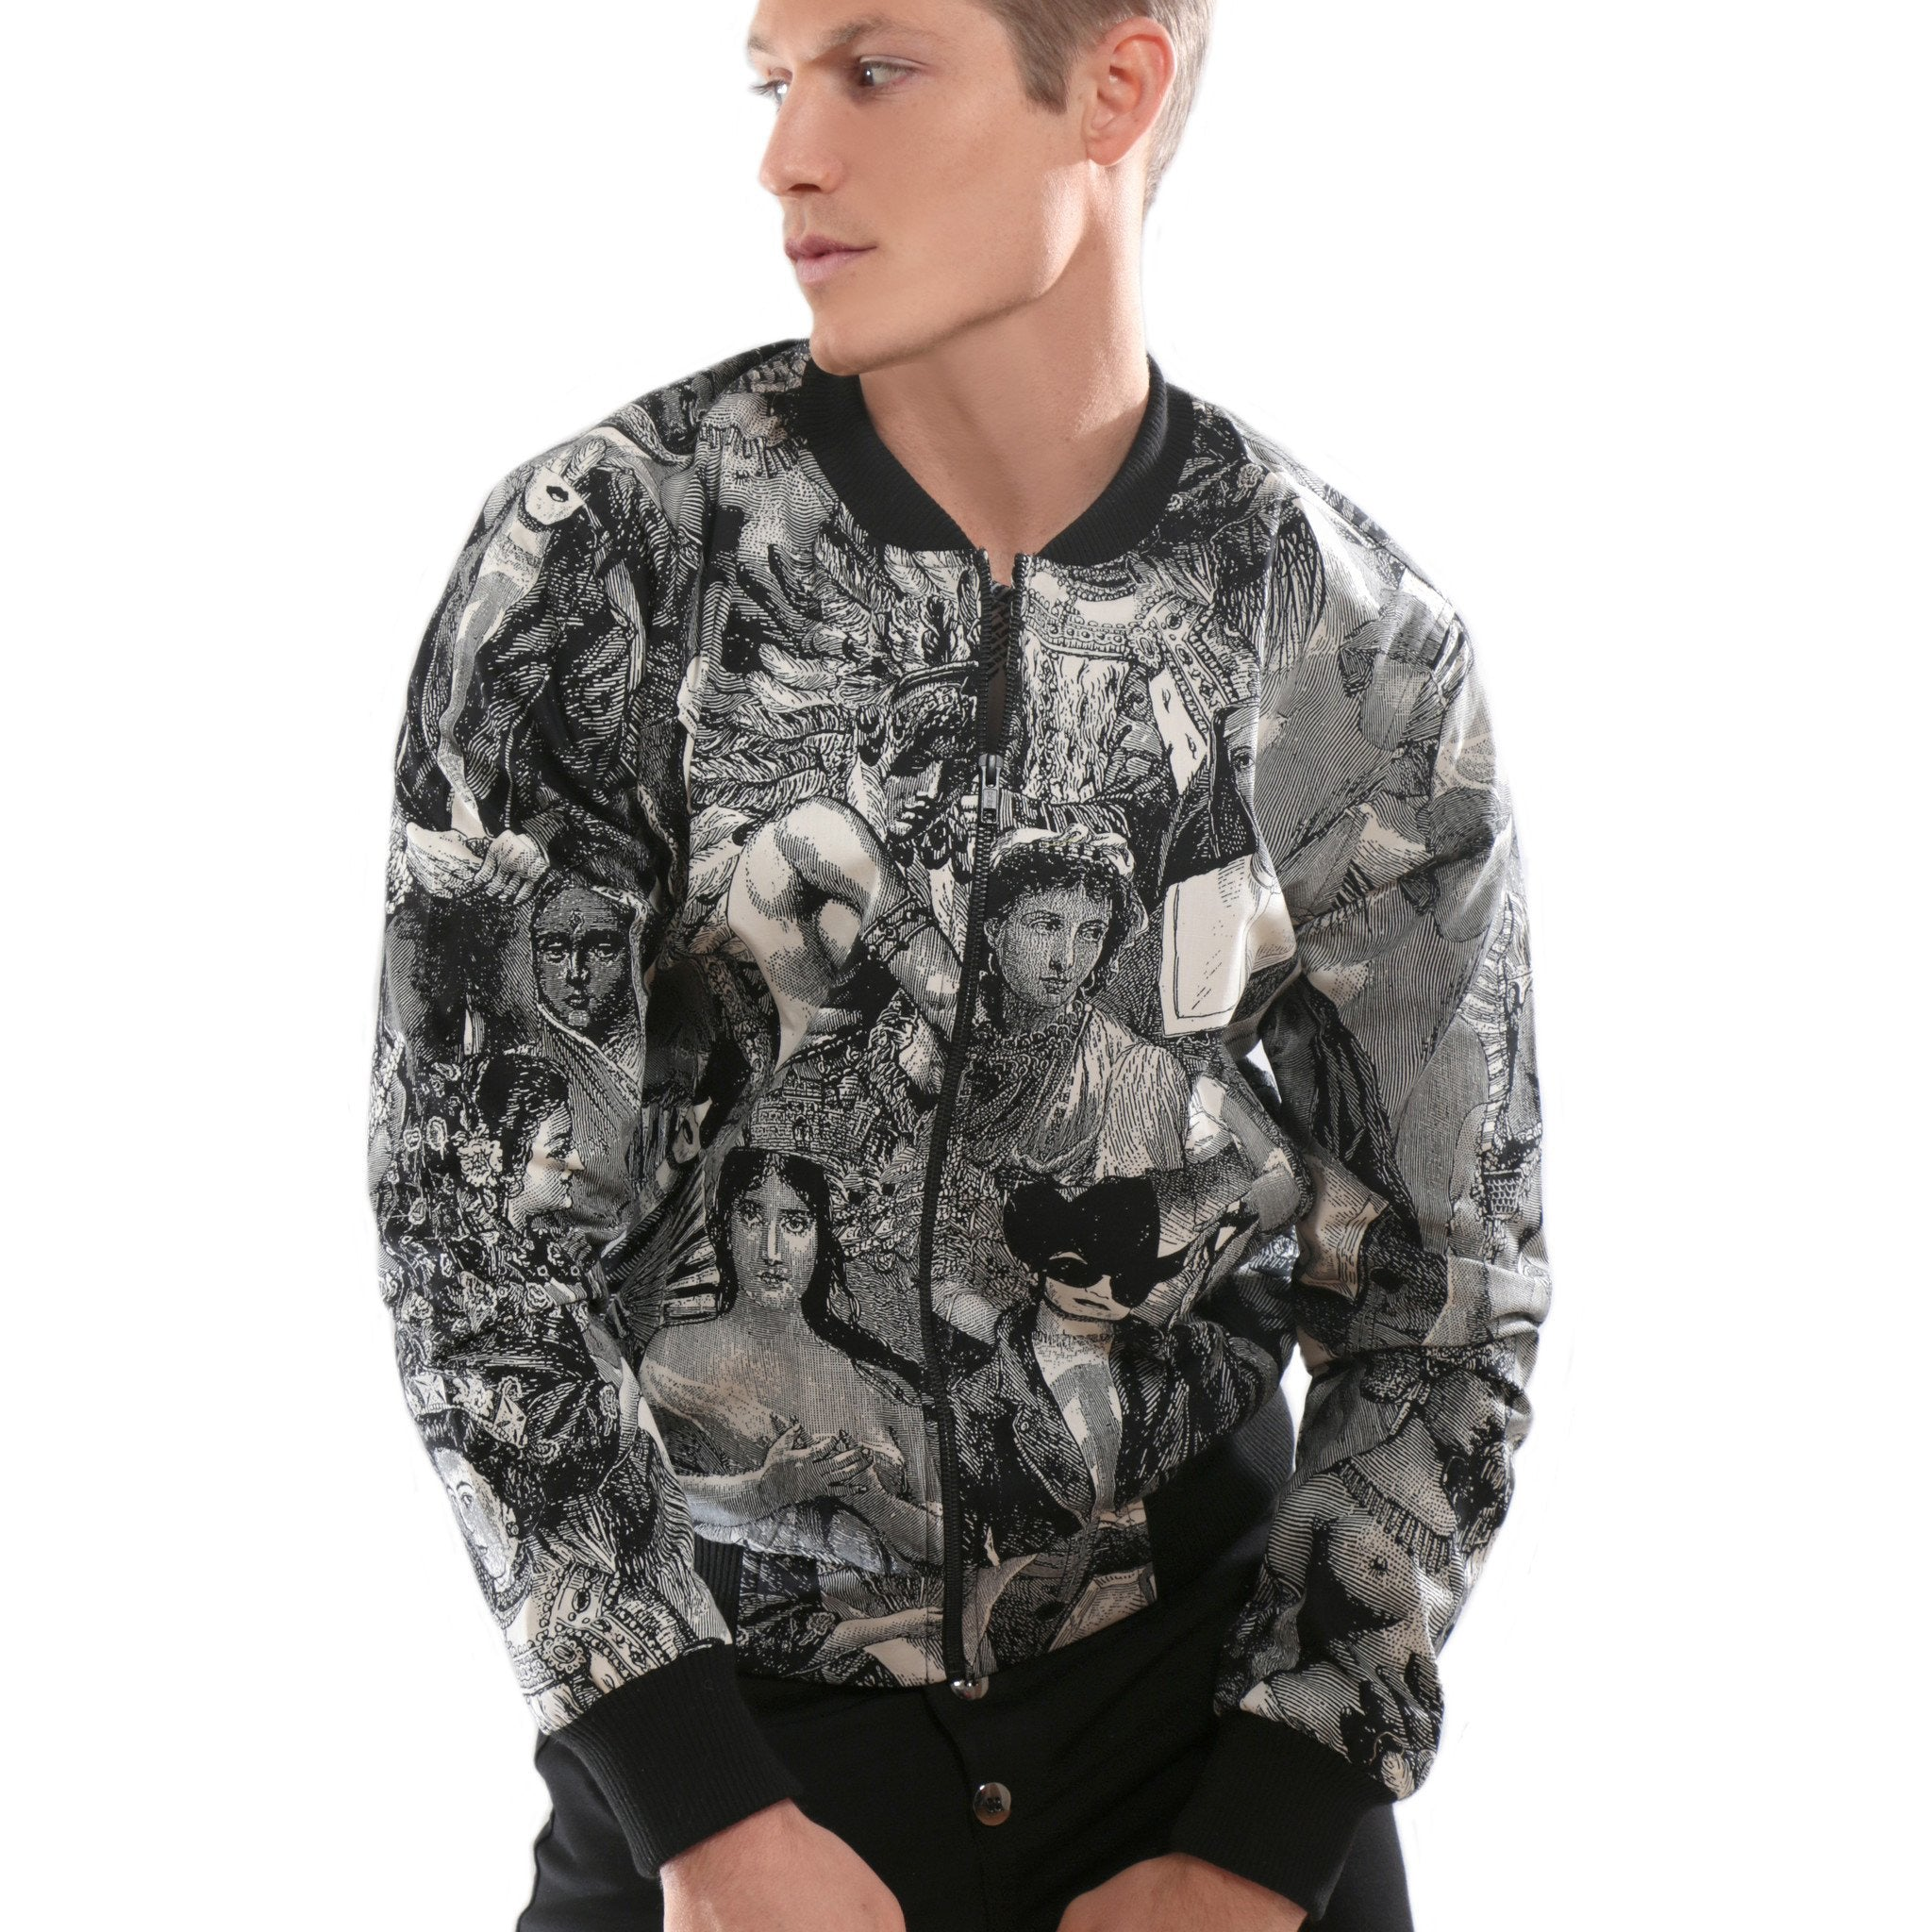 Bomber Jacket with historical image prints